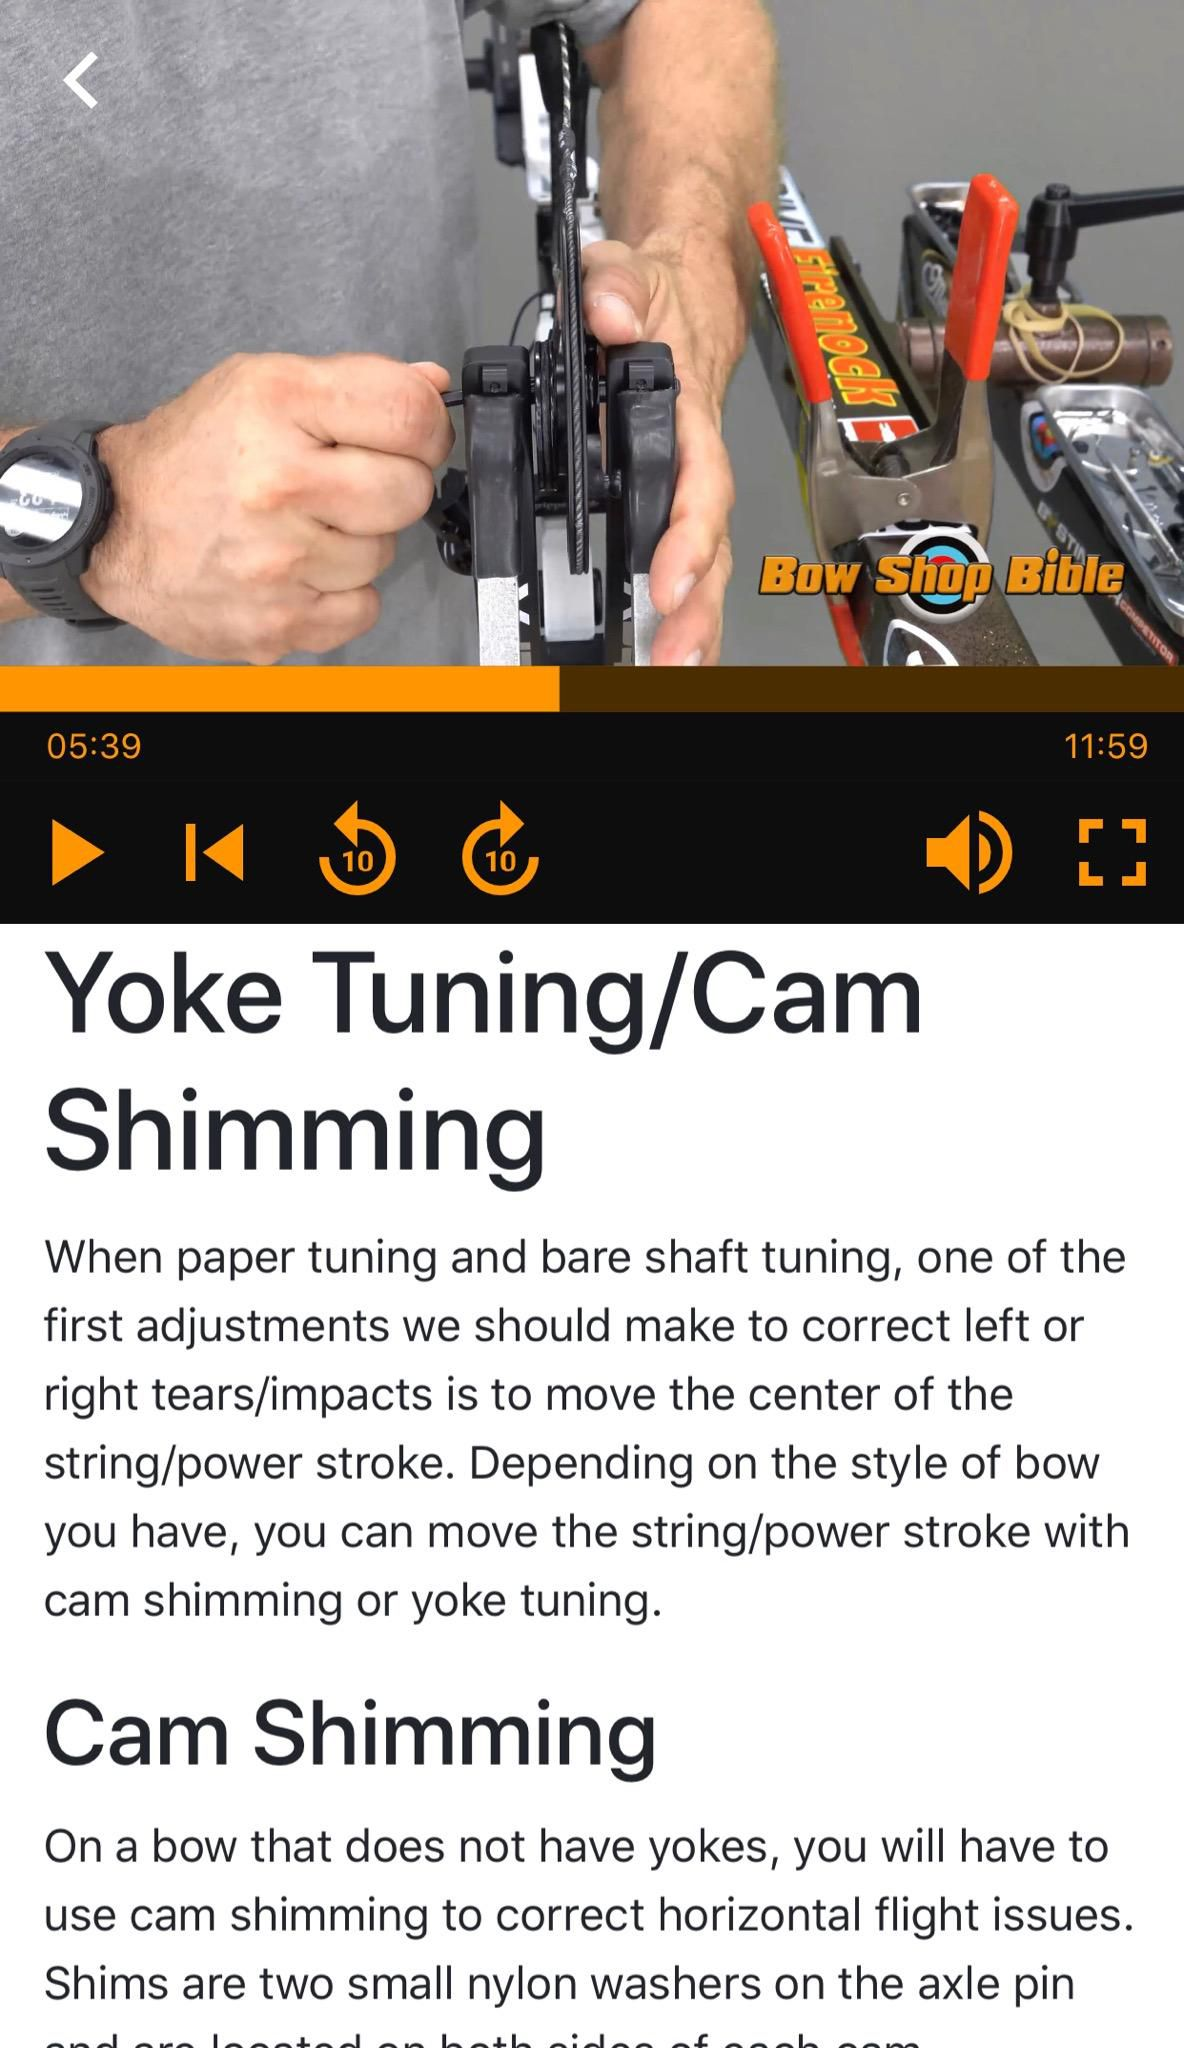 The part of the Bow Shop Bible app on yoke tuning and cam shimming. Provided